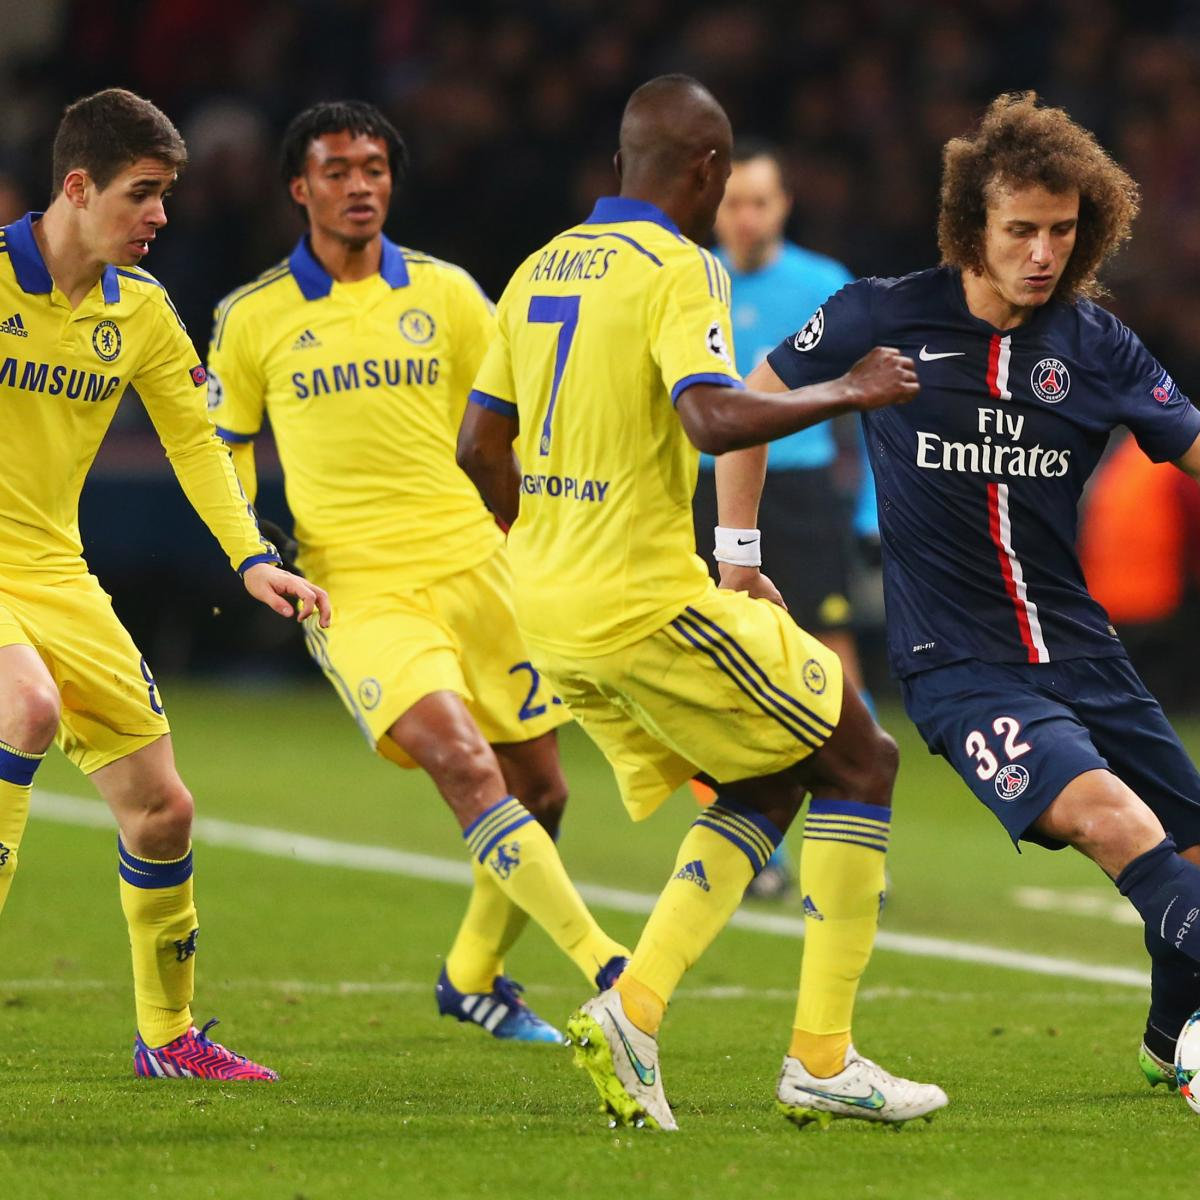 Psg Can Get Revenge On Chelsea In Champions League Last 16